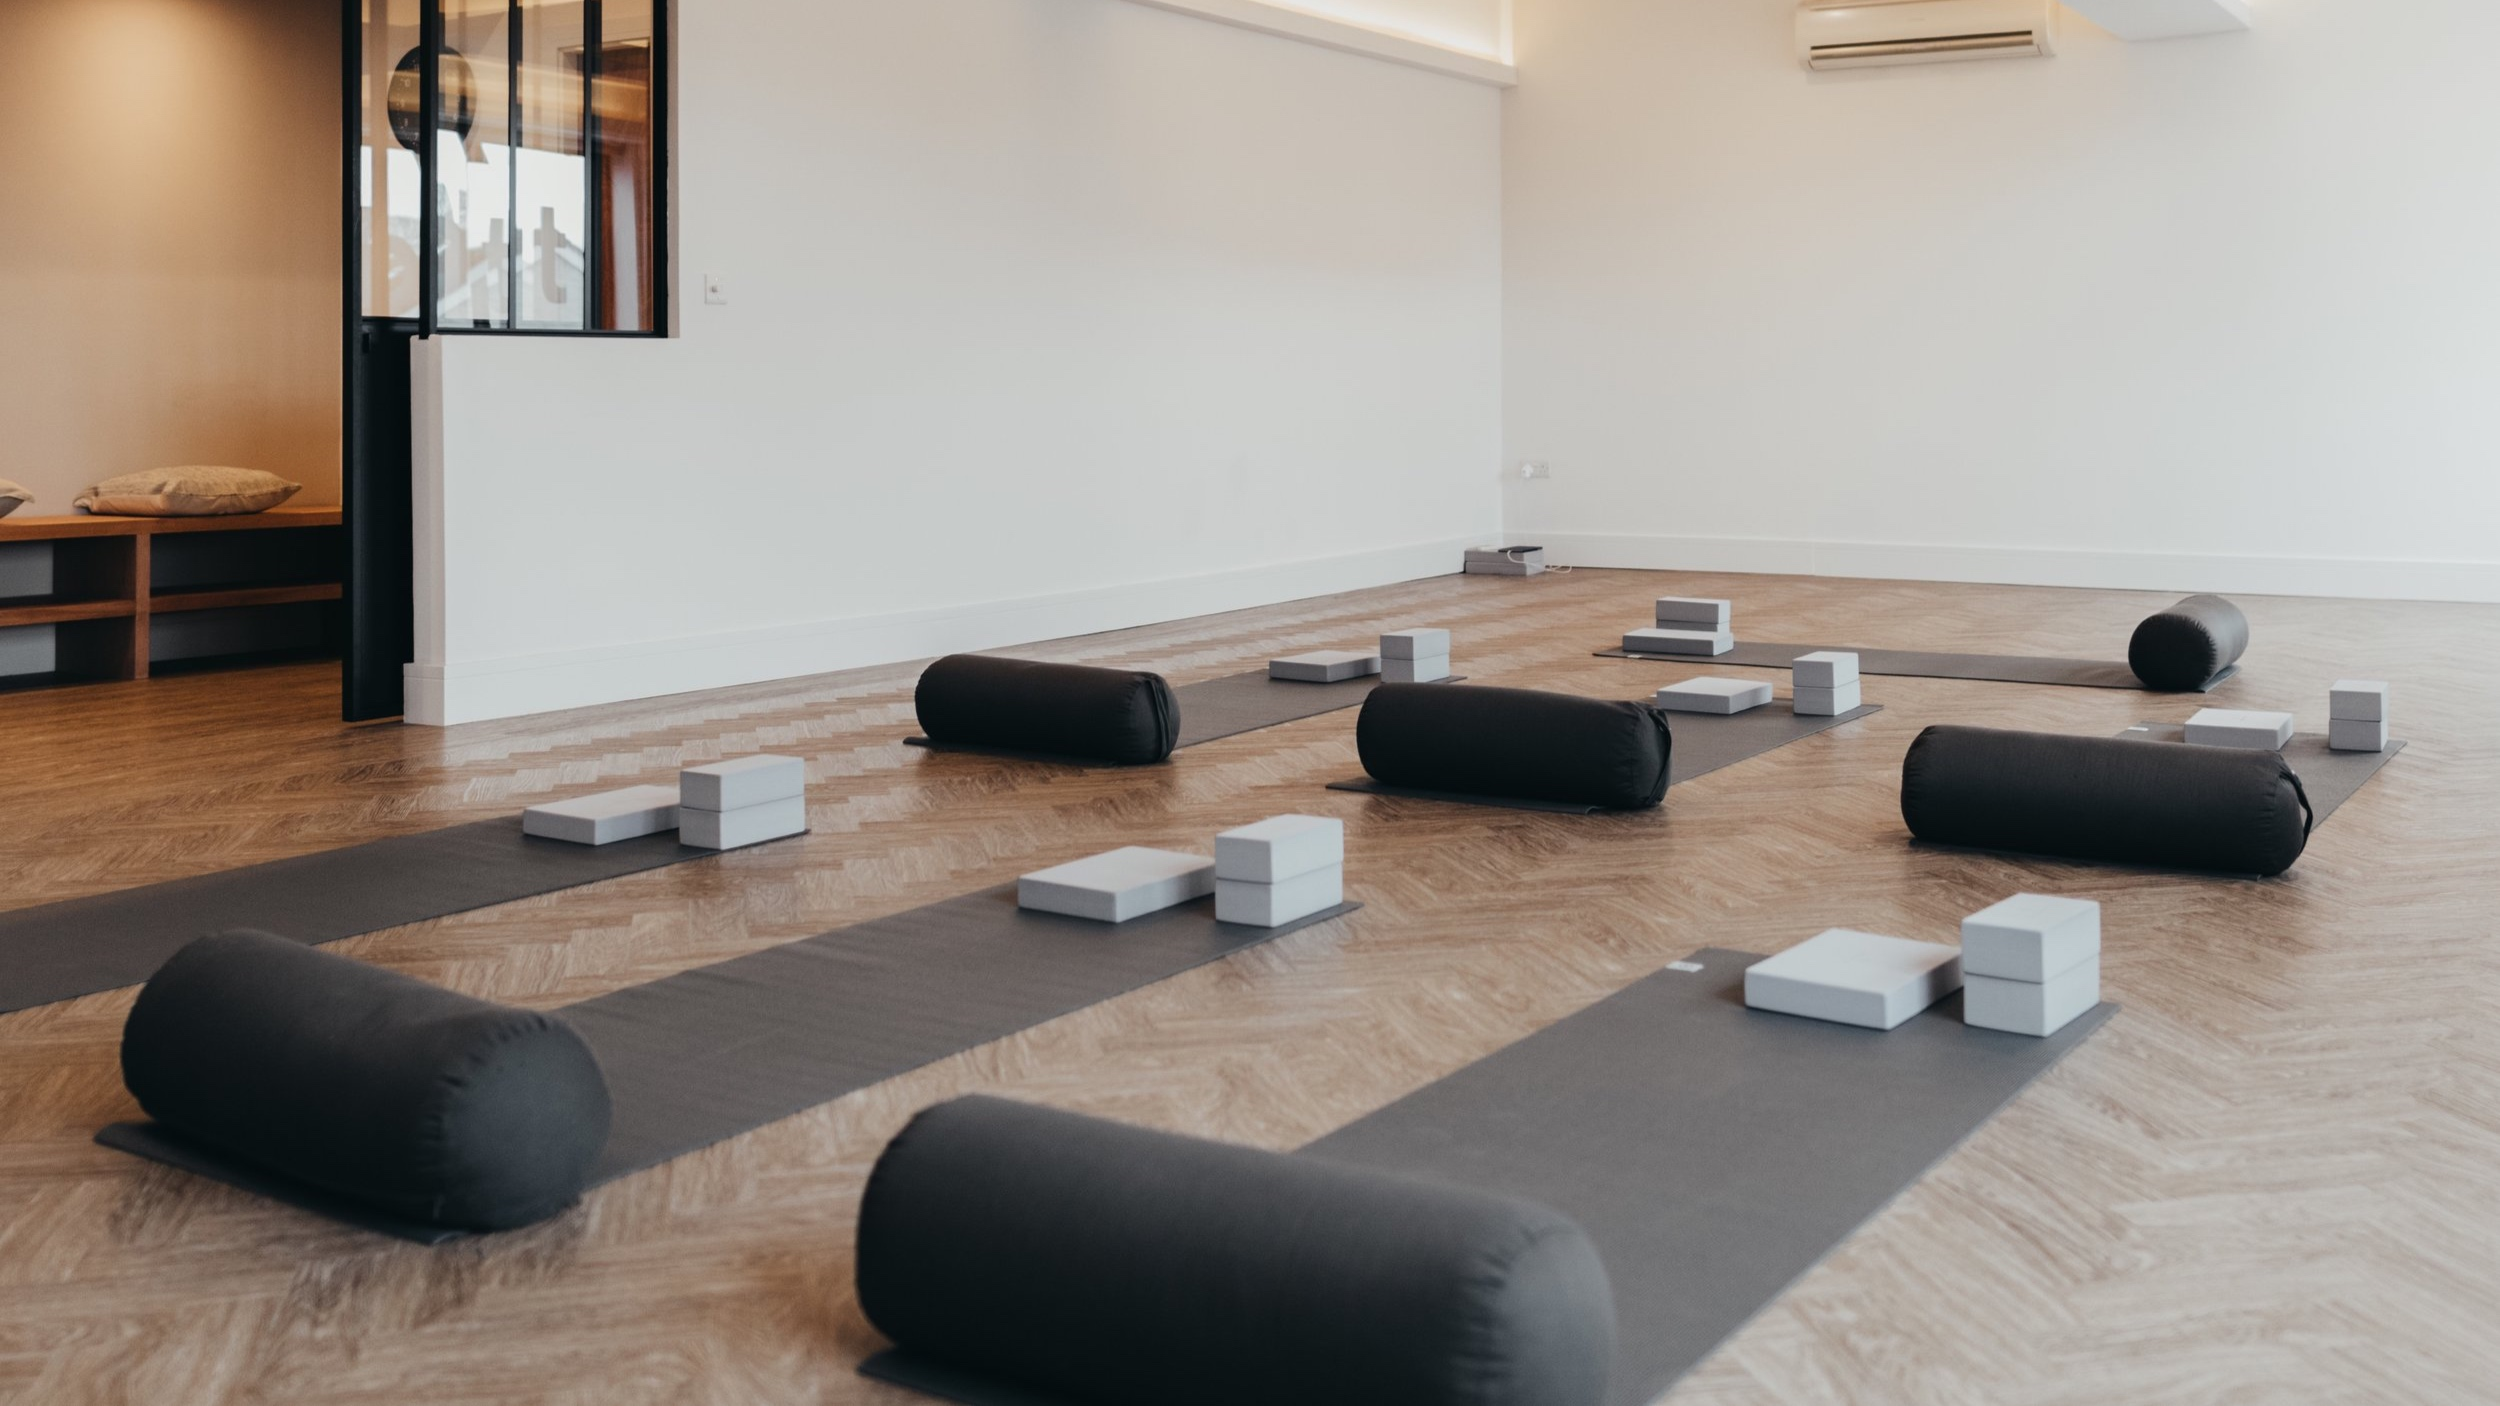 Inhale, exhale, breathe and relax in our beautiful yoga studio.The perfect environment to try yoga for the first time. - YOGA | PEOPLE | COMMUNITYBOOK NOW